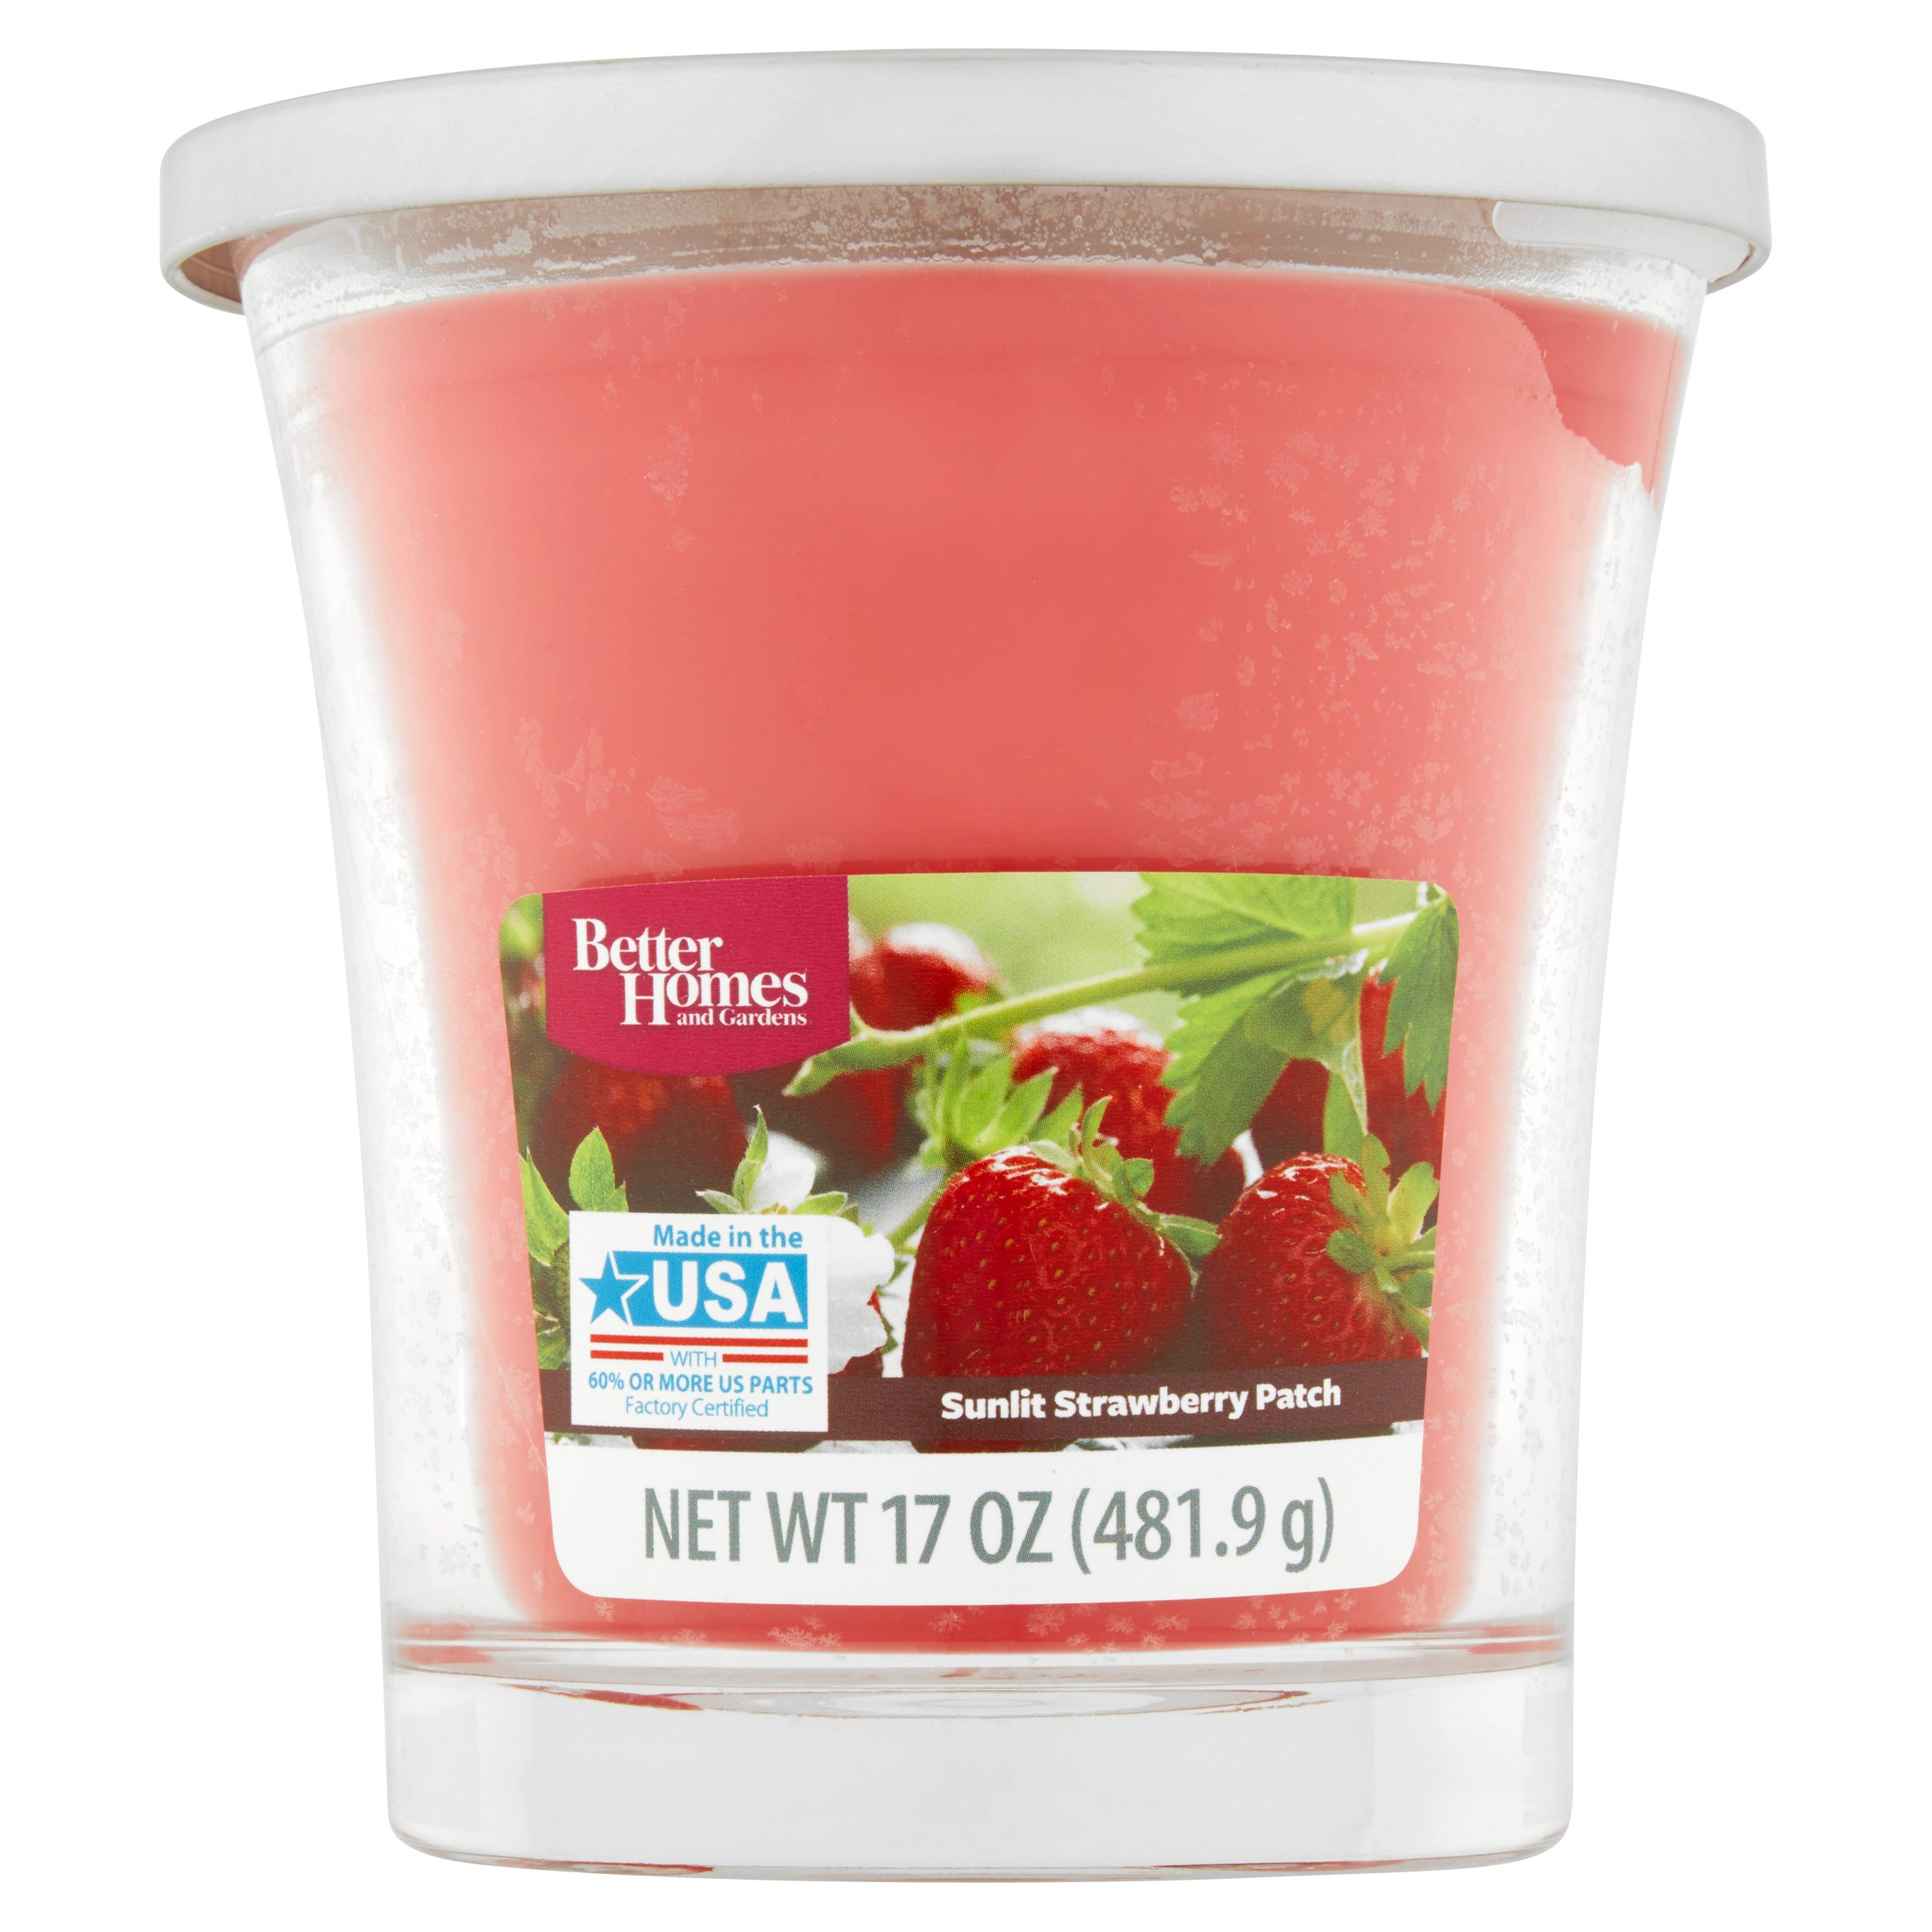 Better Homes and Gardens Sunlit Strawberry Patch Candle, 17 oz by Wal-Mart Stores, Inc.